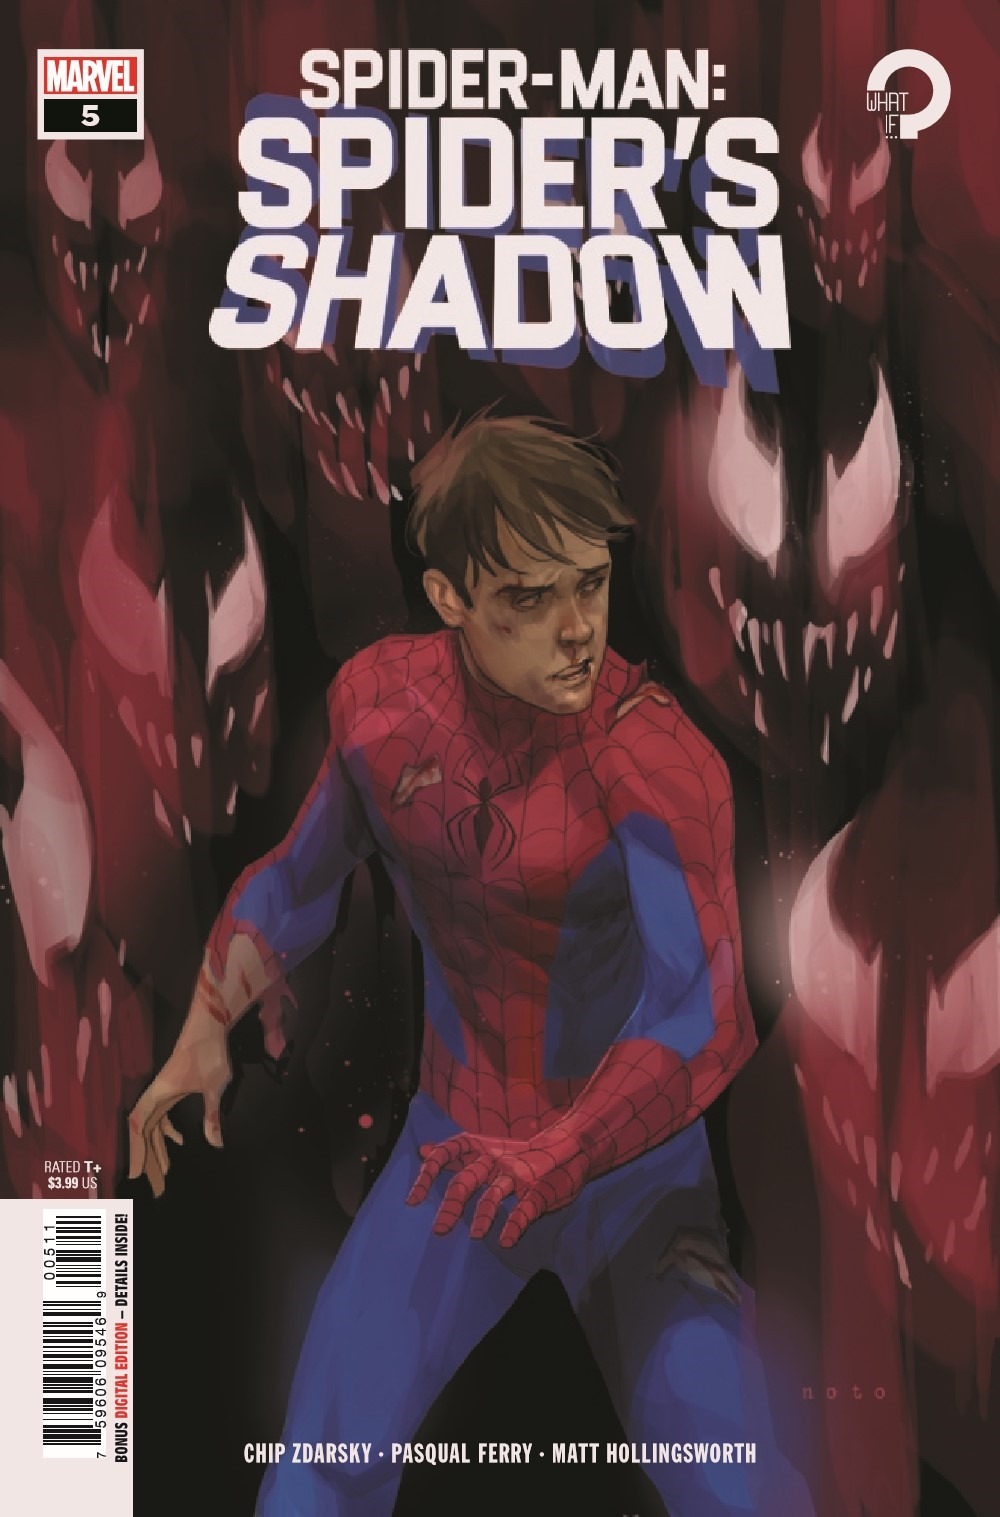 SMSPIDERSHADOW2021005_Preview-1 ComicList Previews: SPIDER-MAN SPIDER'S SHADOW #5 (OF 5)